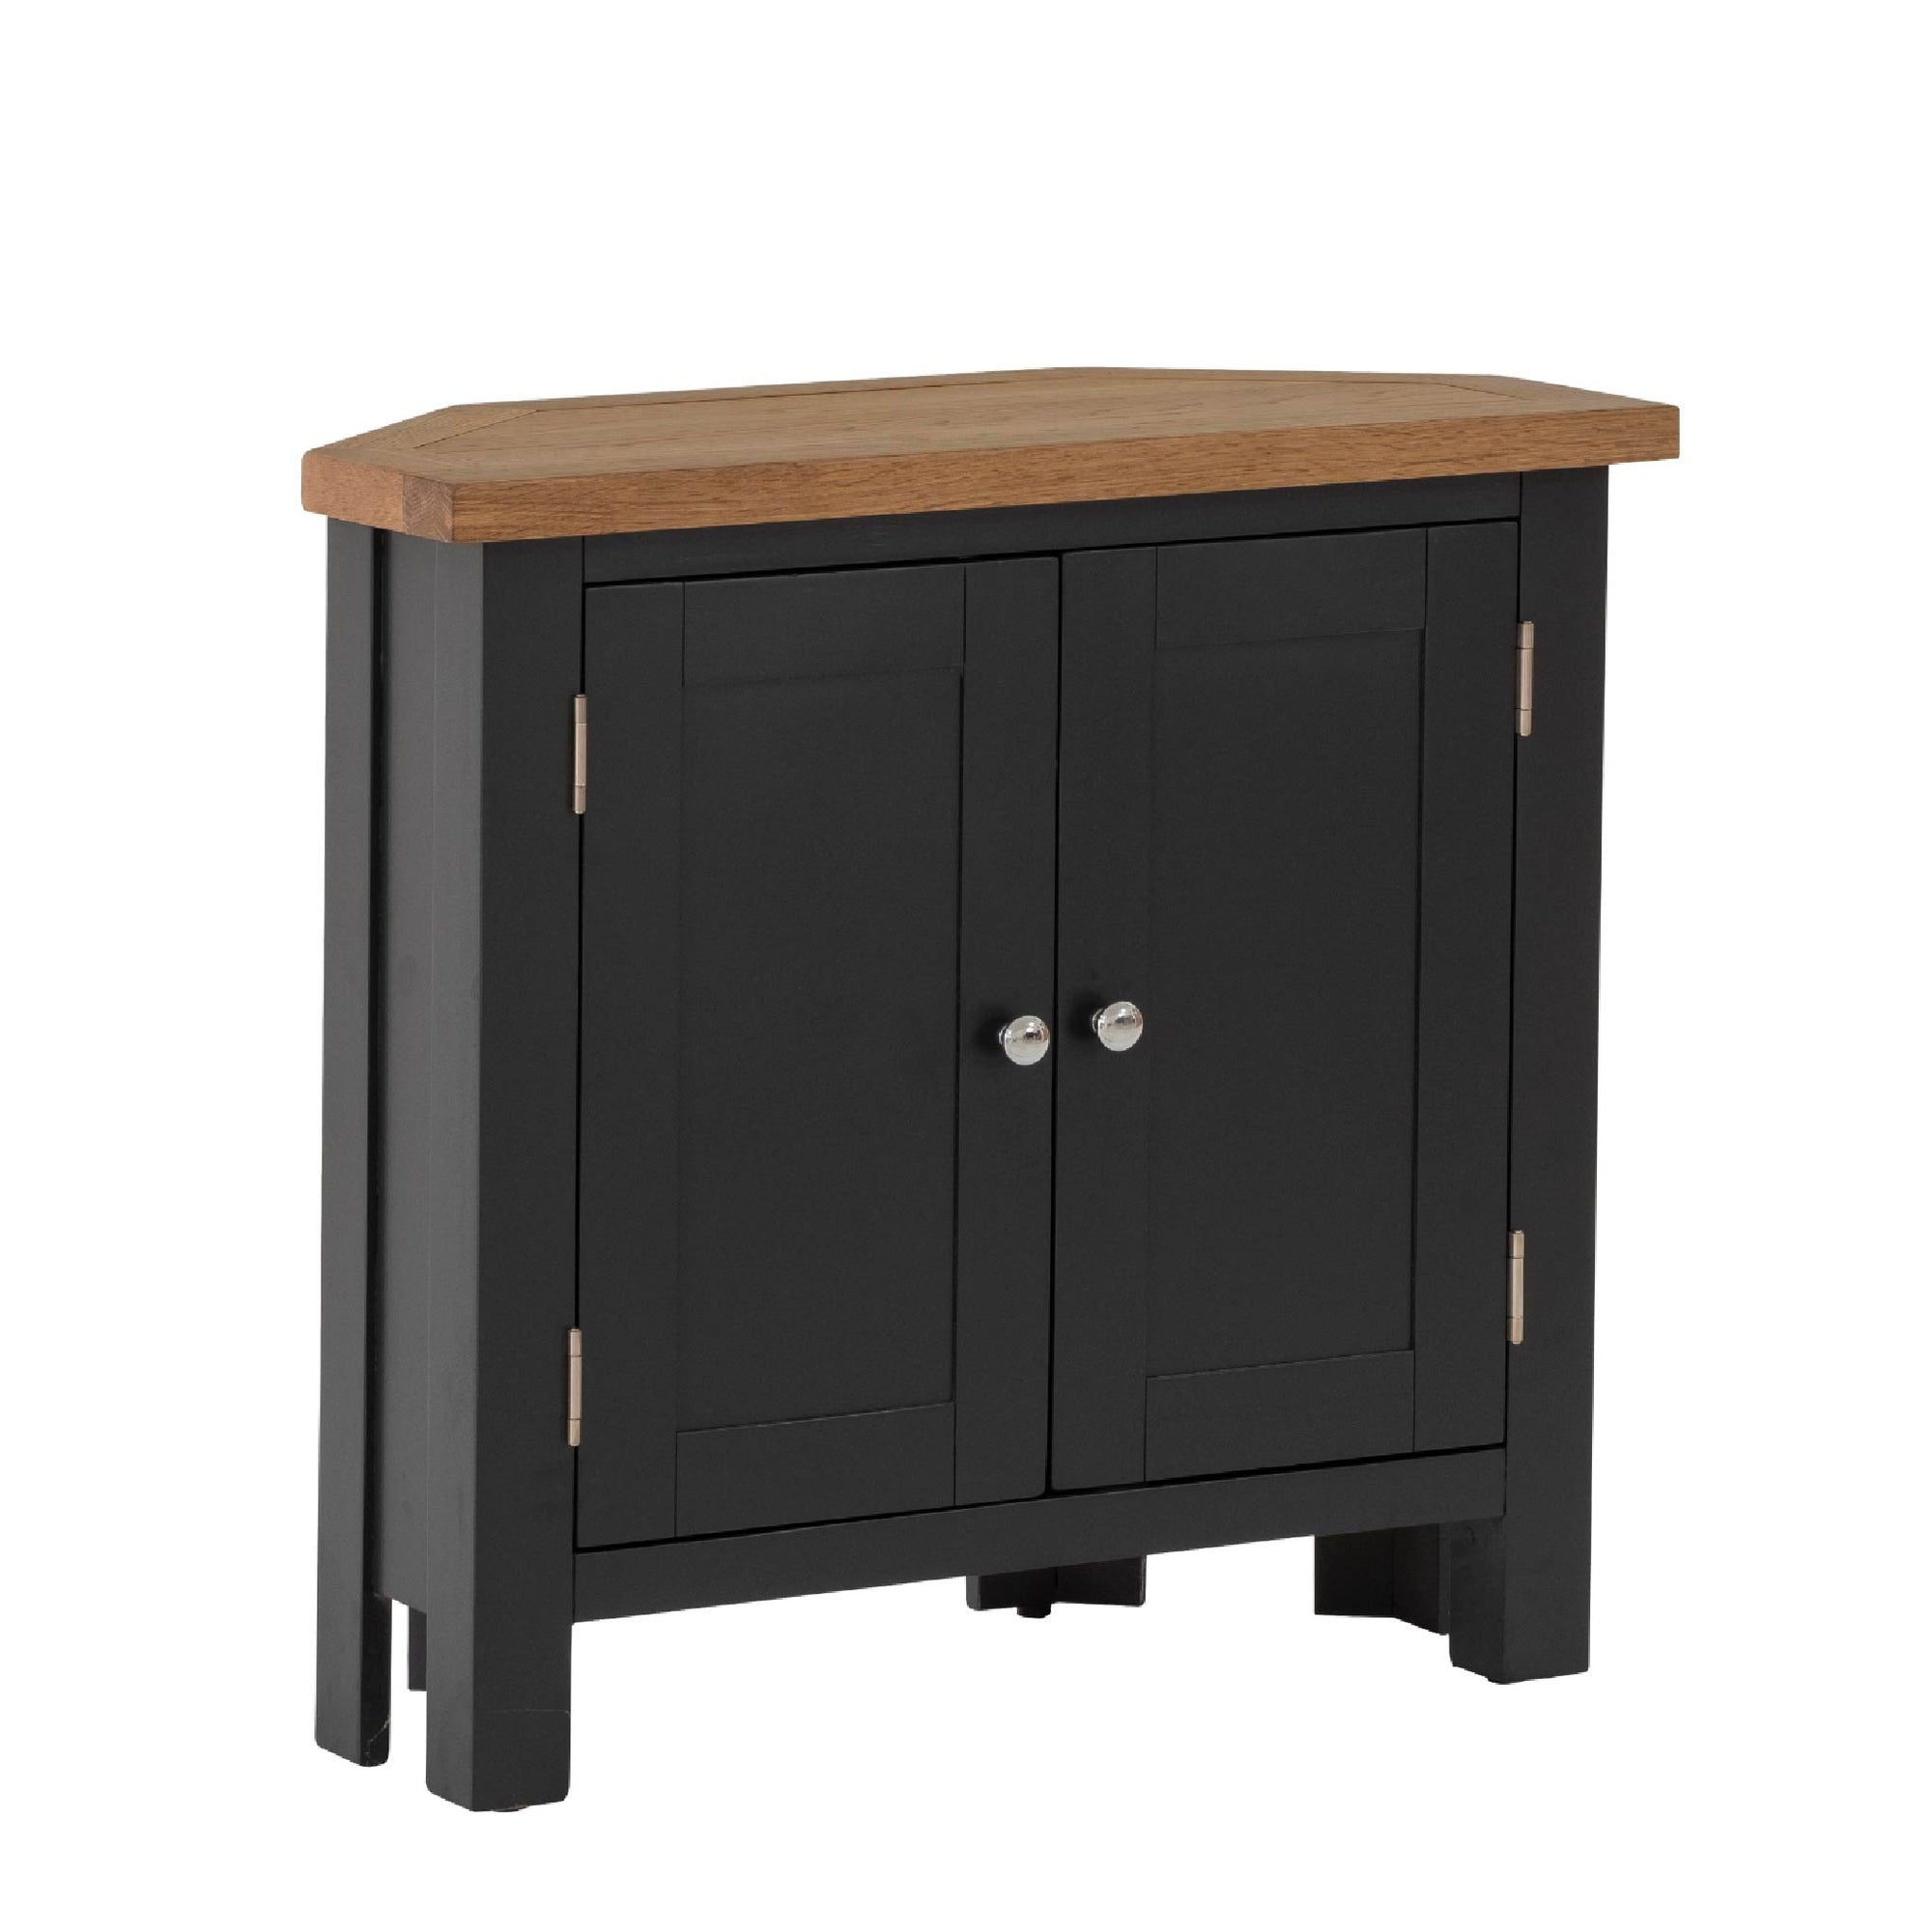 Charlestown Black Corner Cupboard with Oak Top by Roseland Furniture